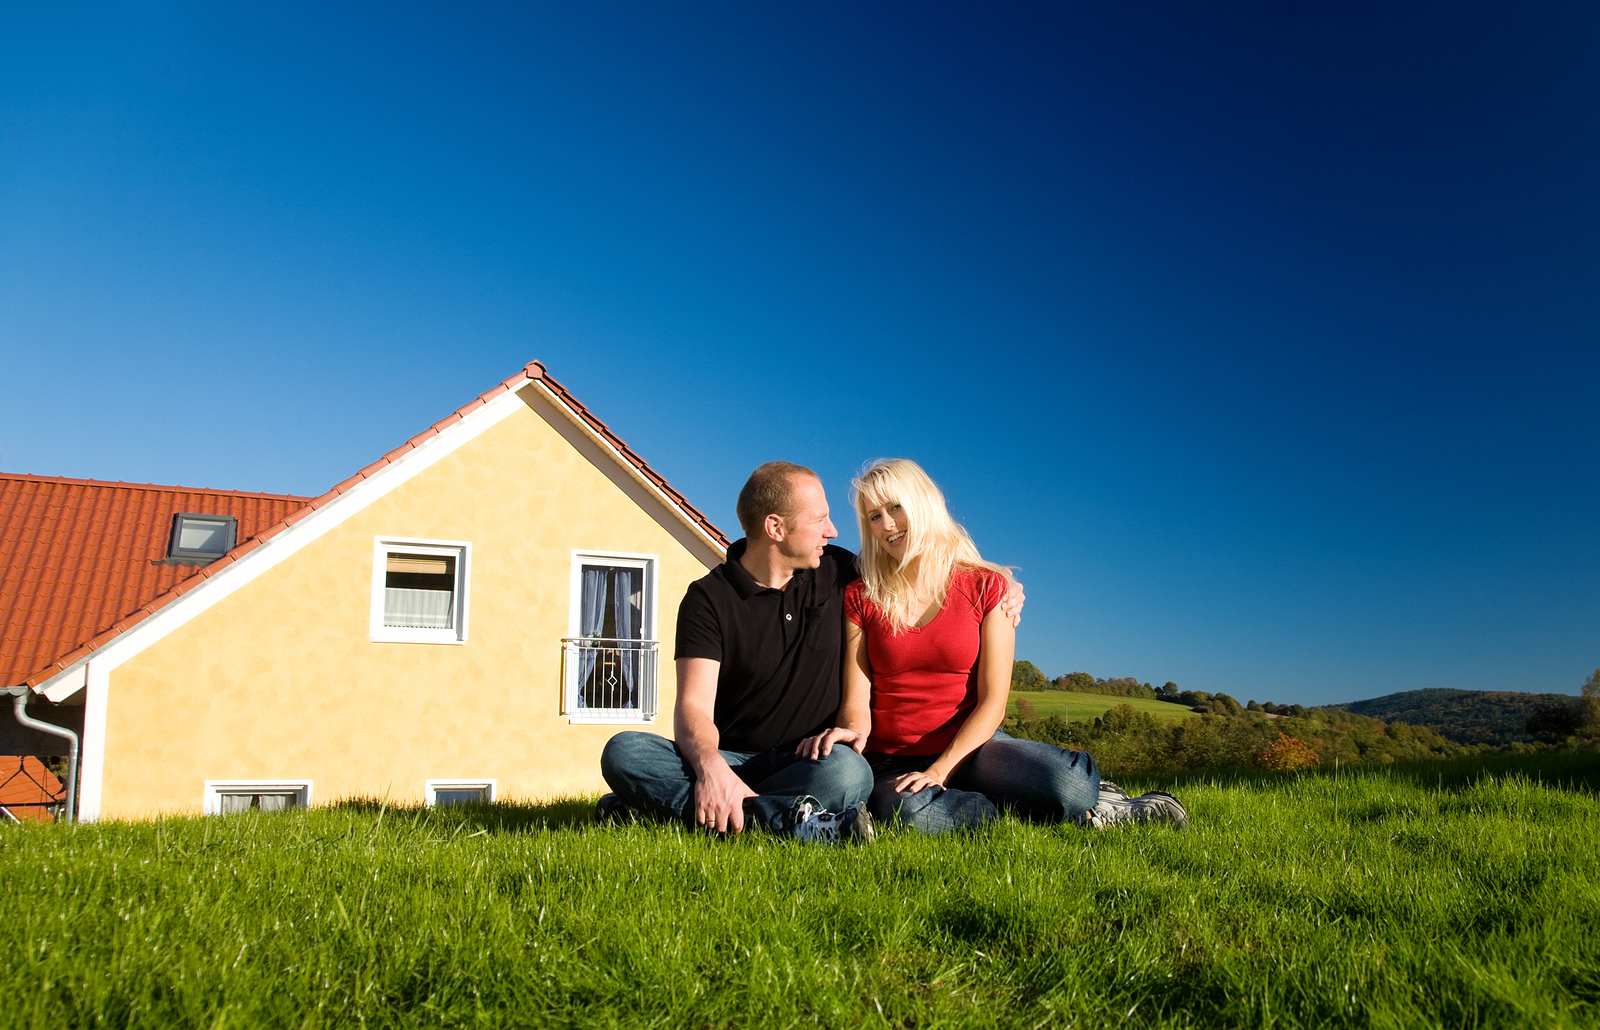 Rural Land or Neighborhood? Finding the Right Space For Your New Home